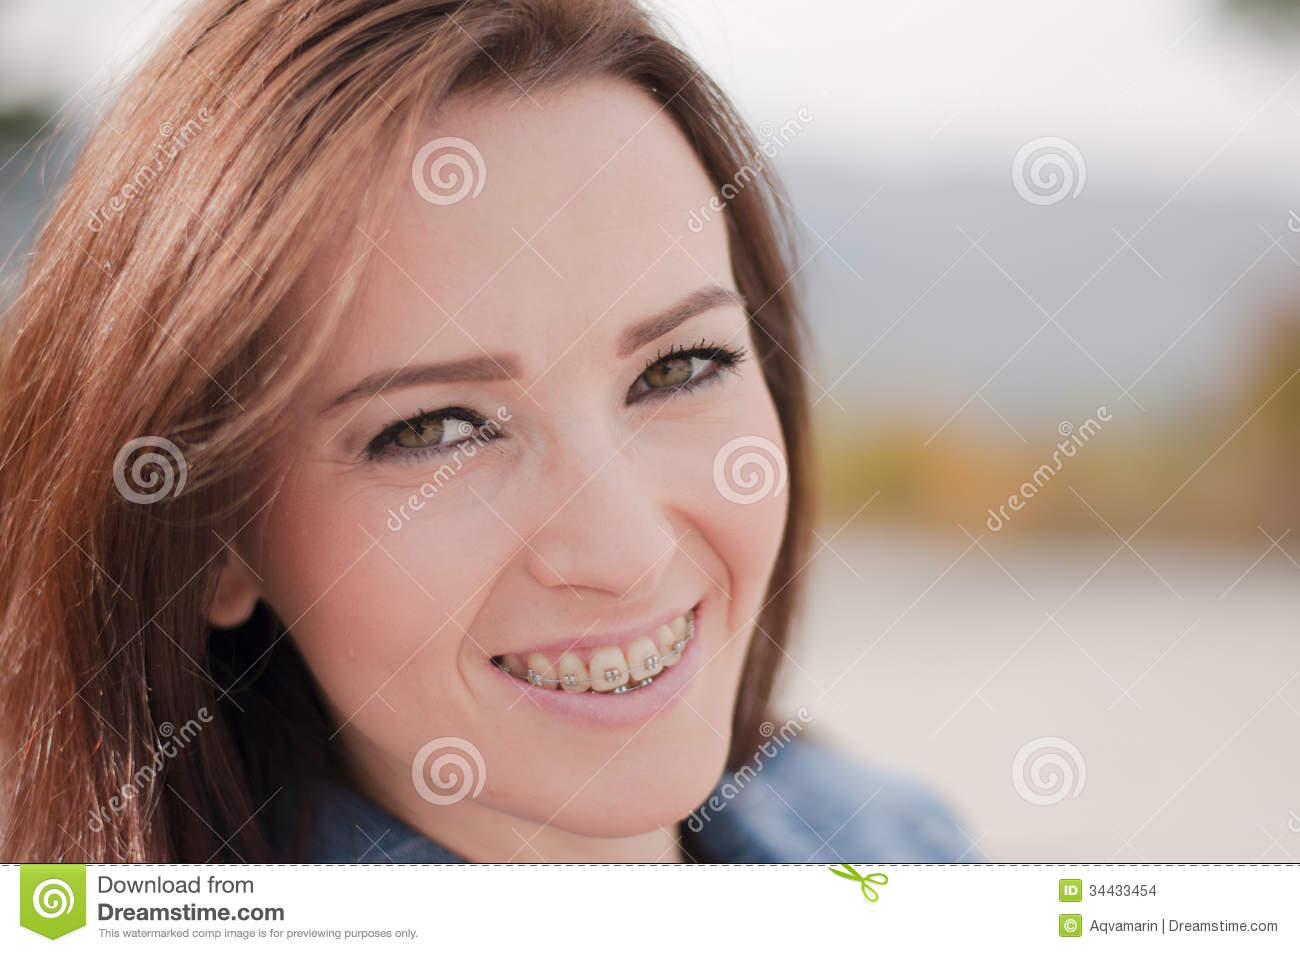 Brunette teen with braces smiling